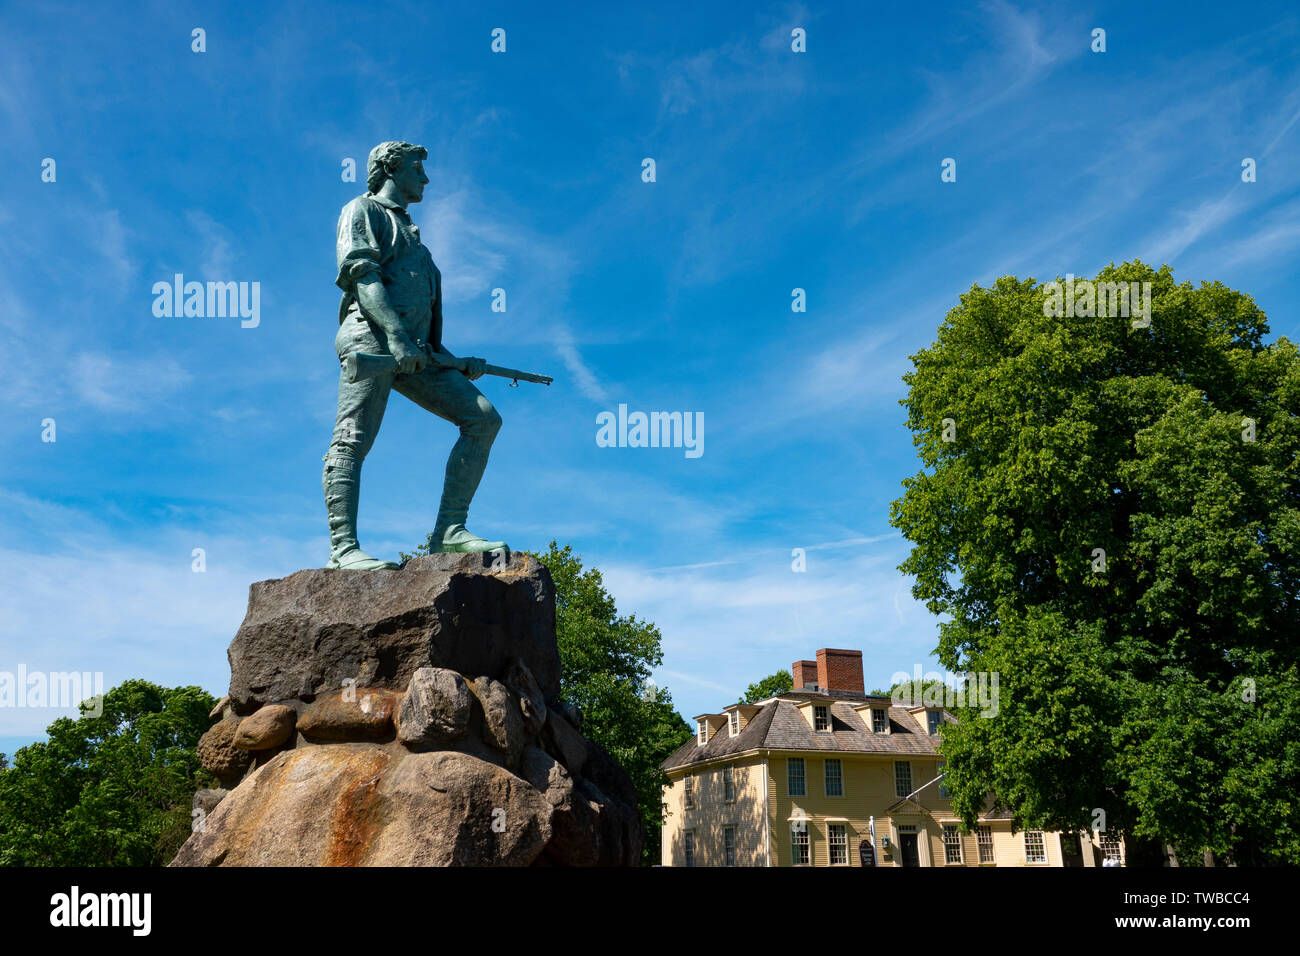 usa-massachusetts-ma-lexington-minuteman-statue-also-called-captain-john-parker-statue-TWBCC4.jpg